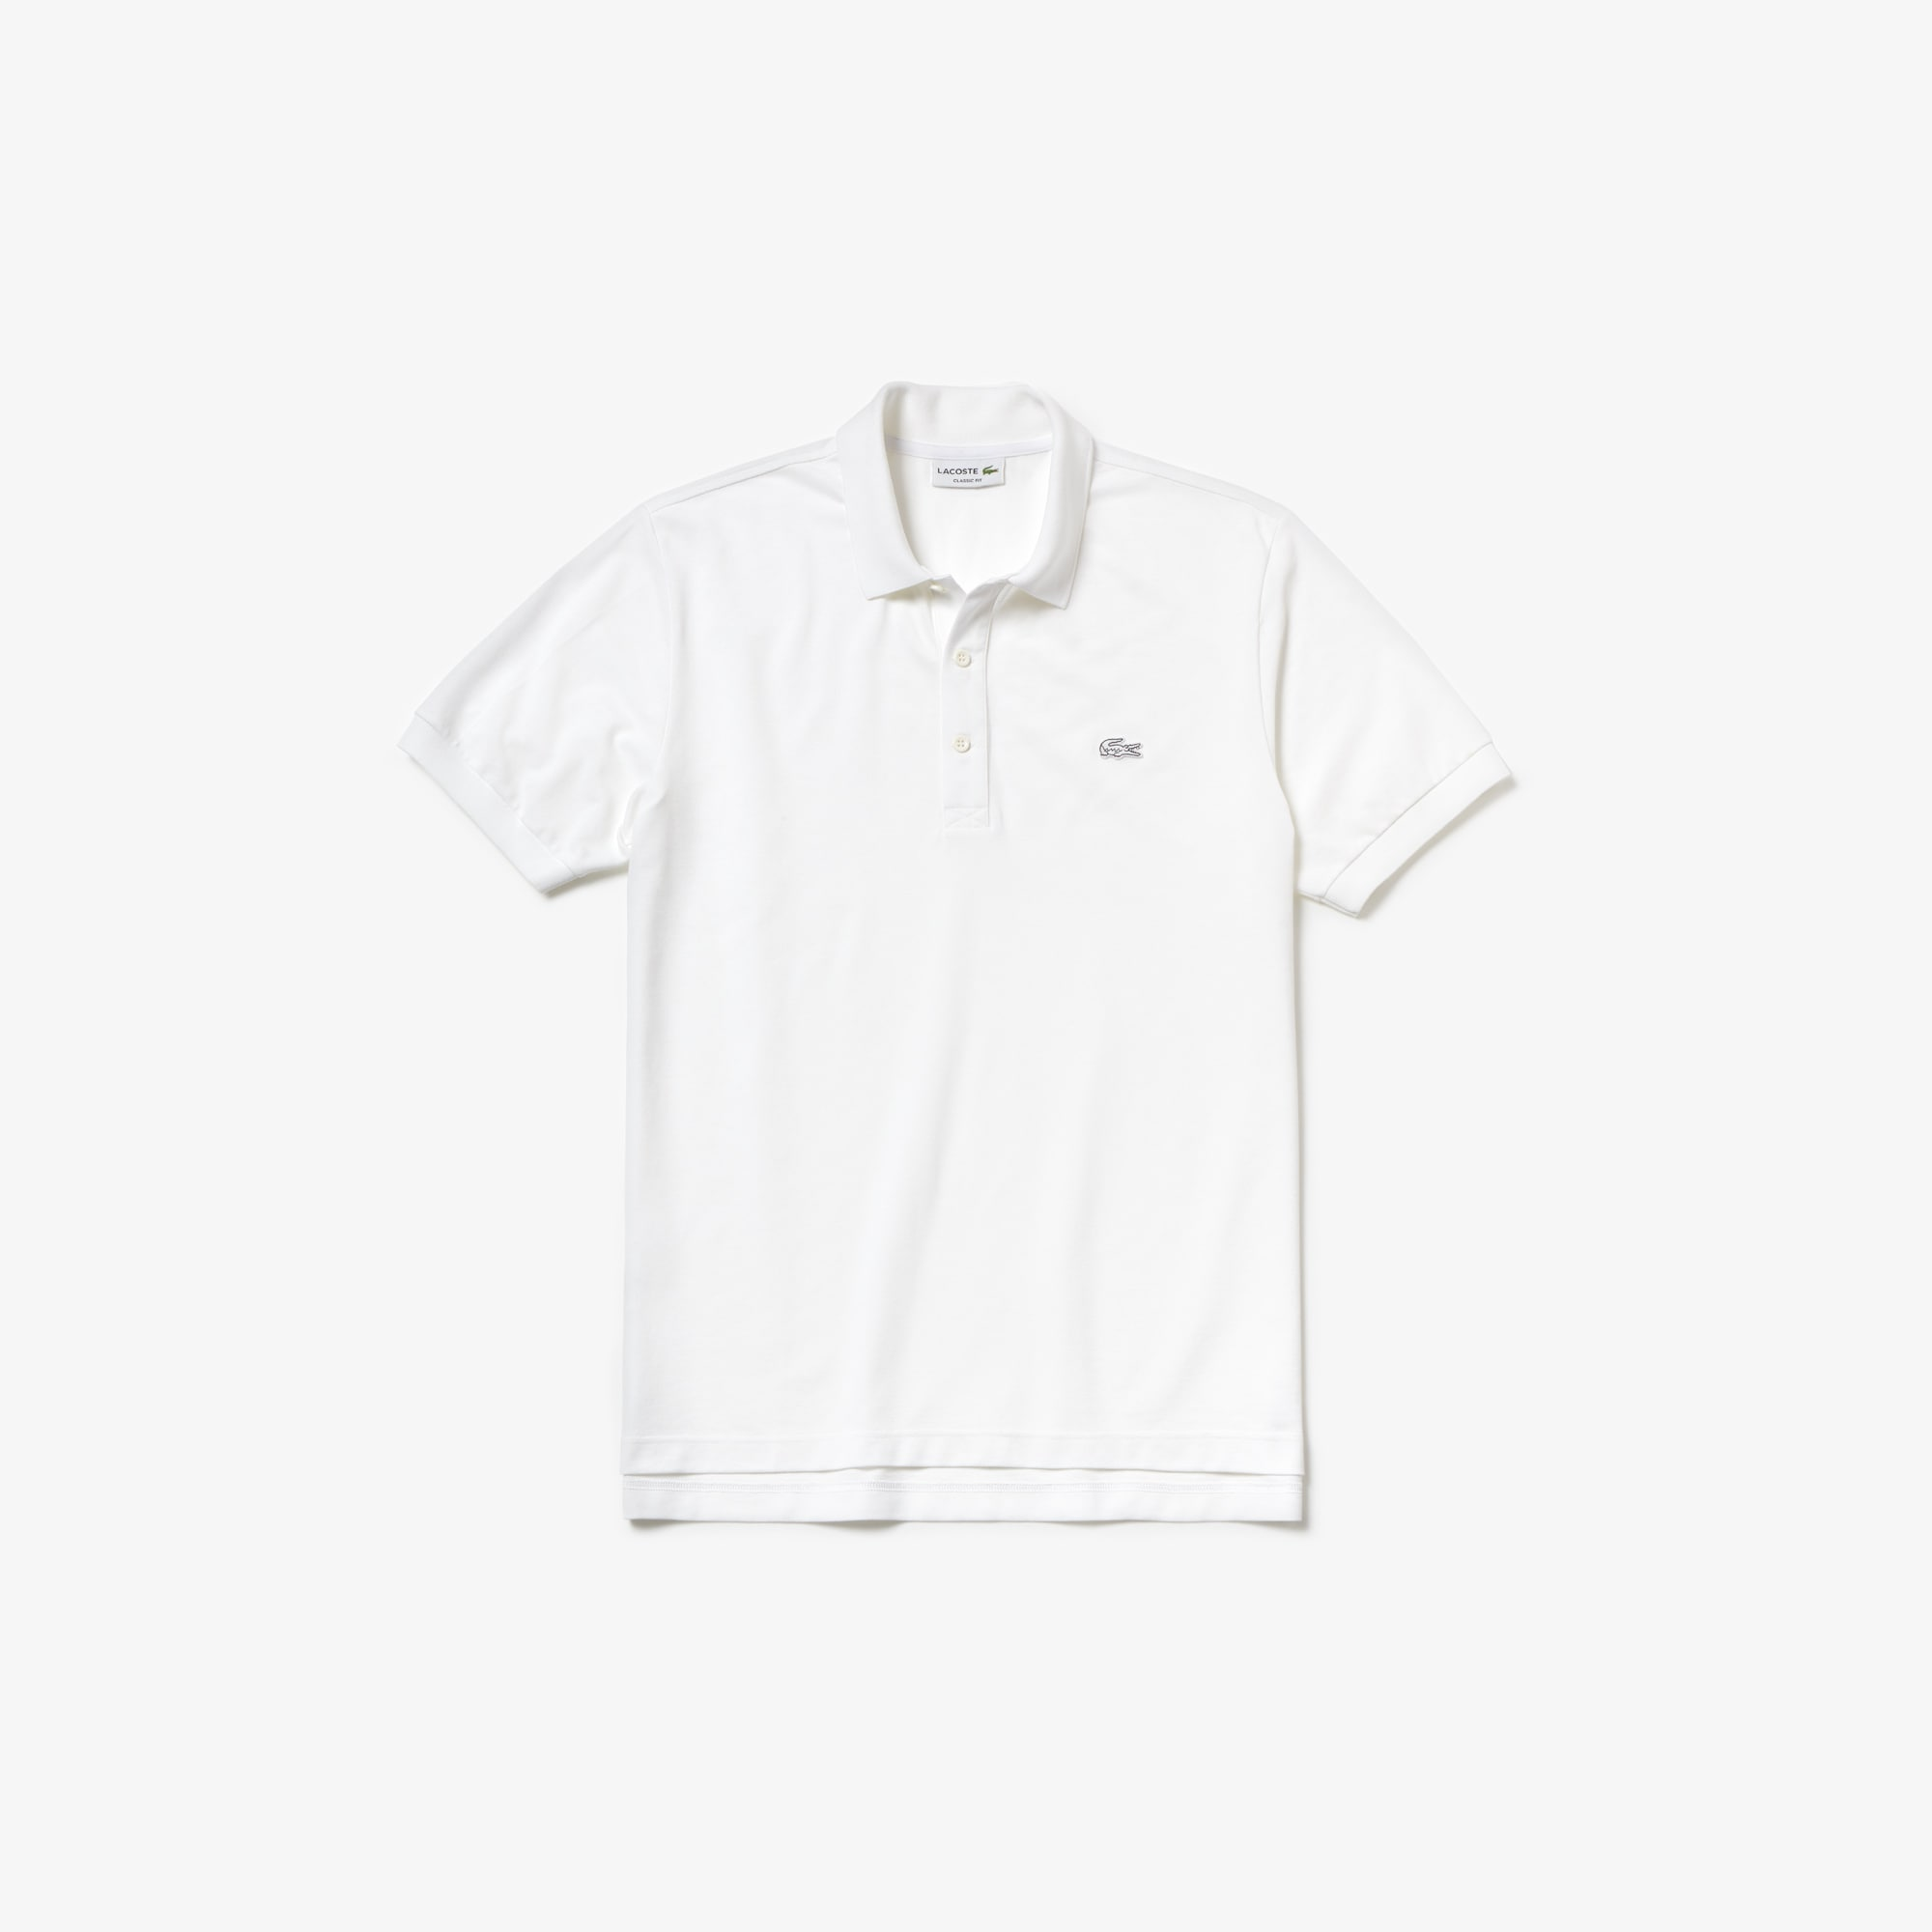 Men's Lacoste Riviera L.12.12 Ultra Light Cotton Petit Piqué Polo Shirt